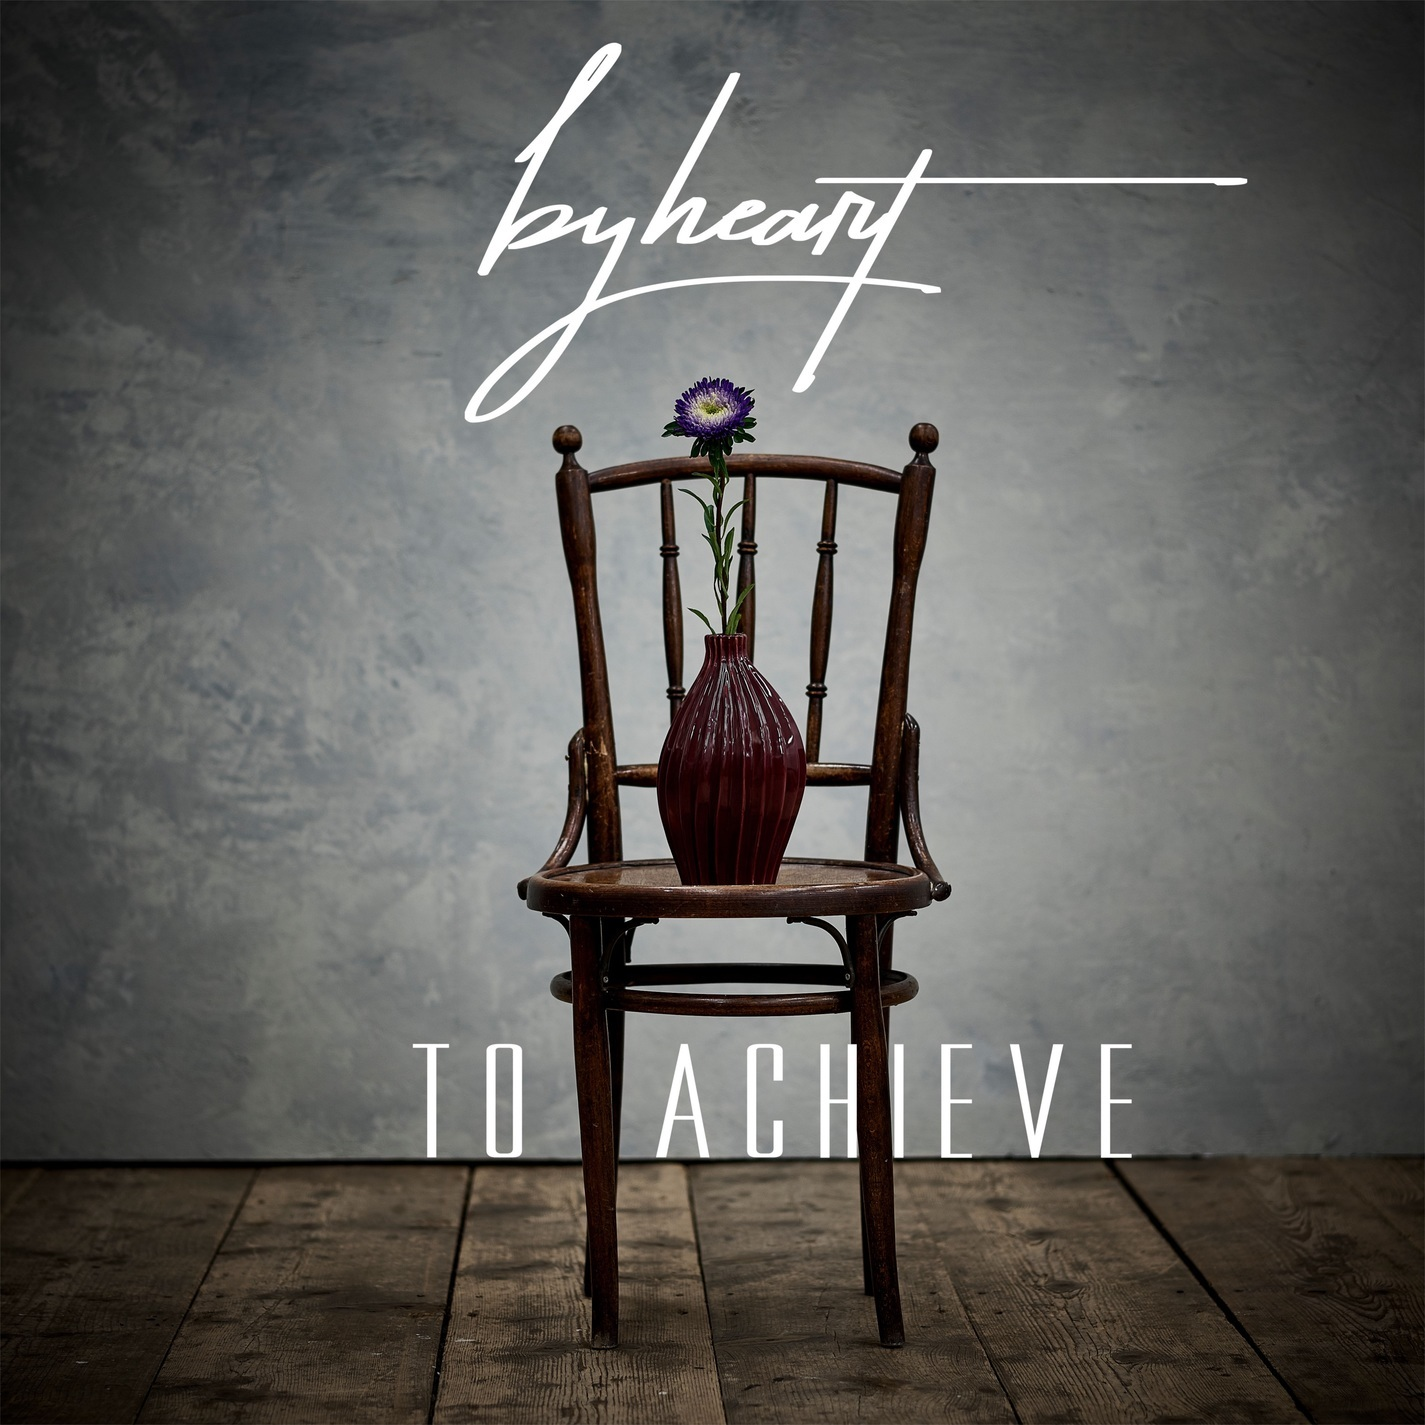 ByHeart - To Achieve [EP] (2018)